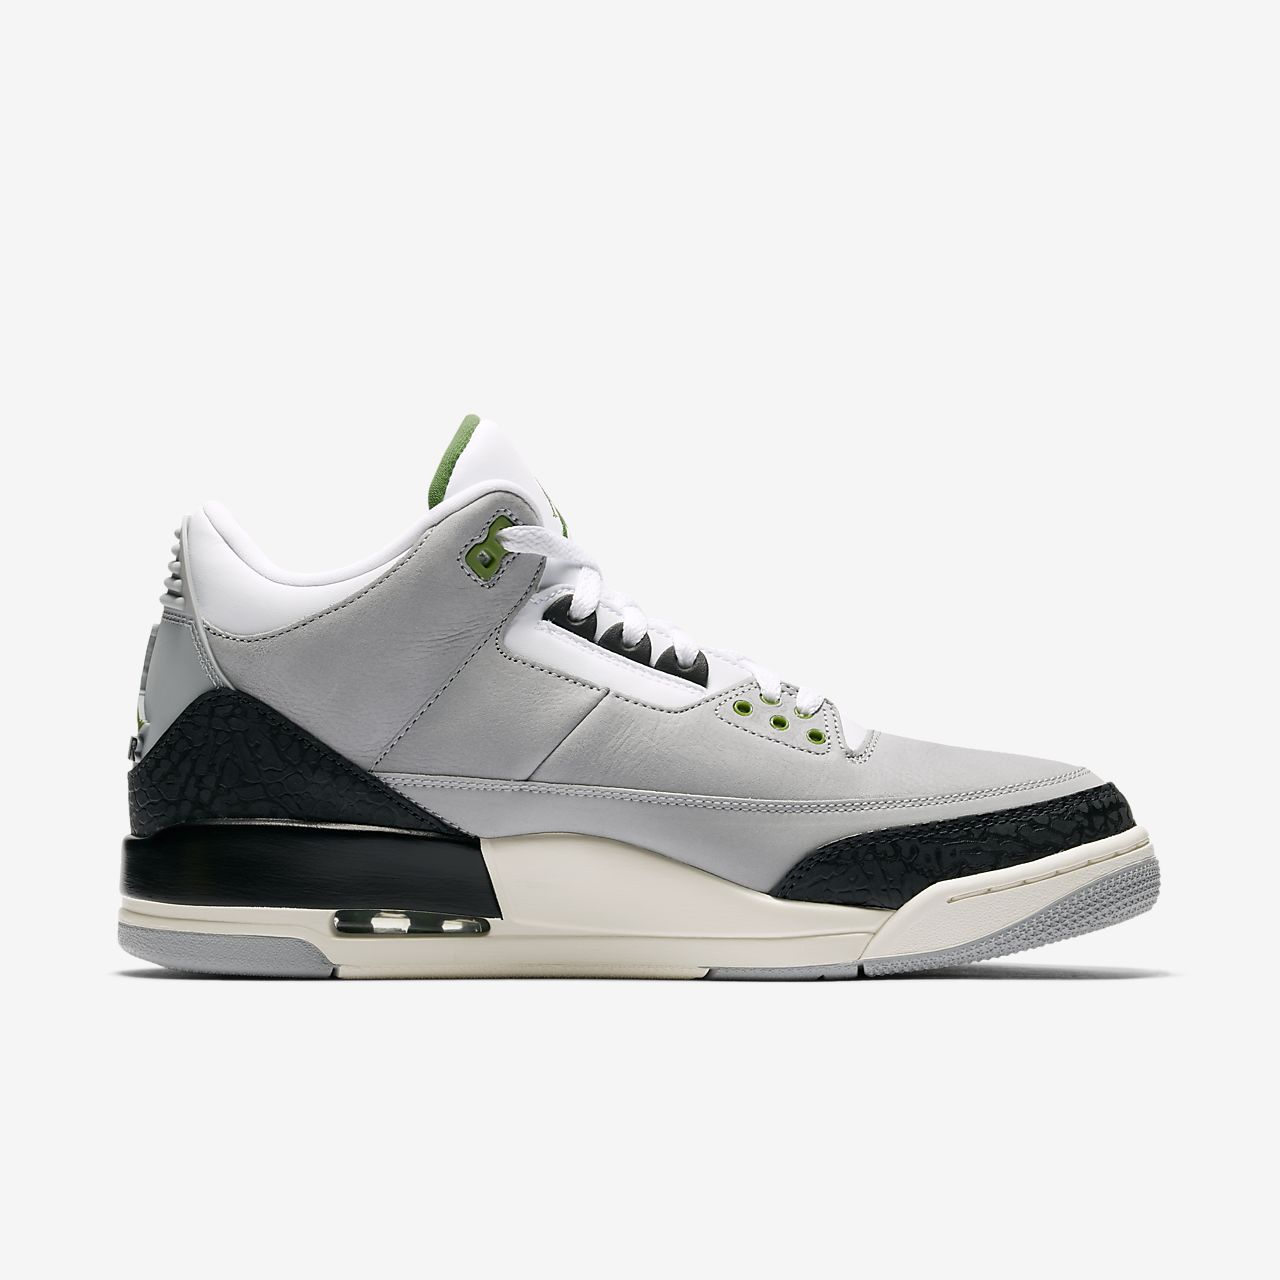 sports shoes 0e458 8668d ... Chaussure Air Jordan 3 Retro pour Homme